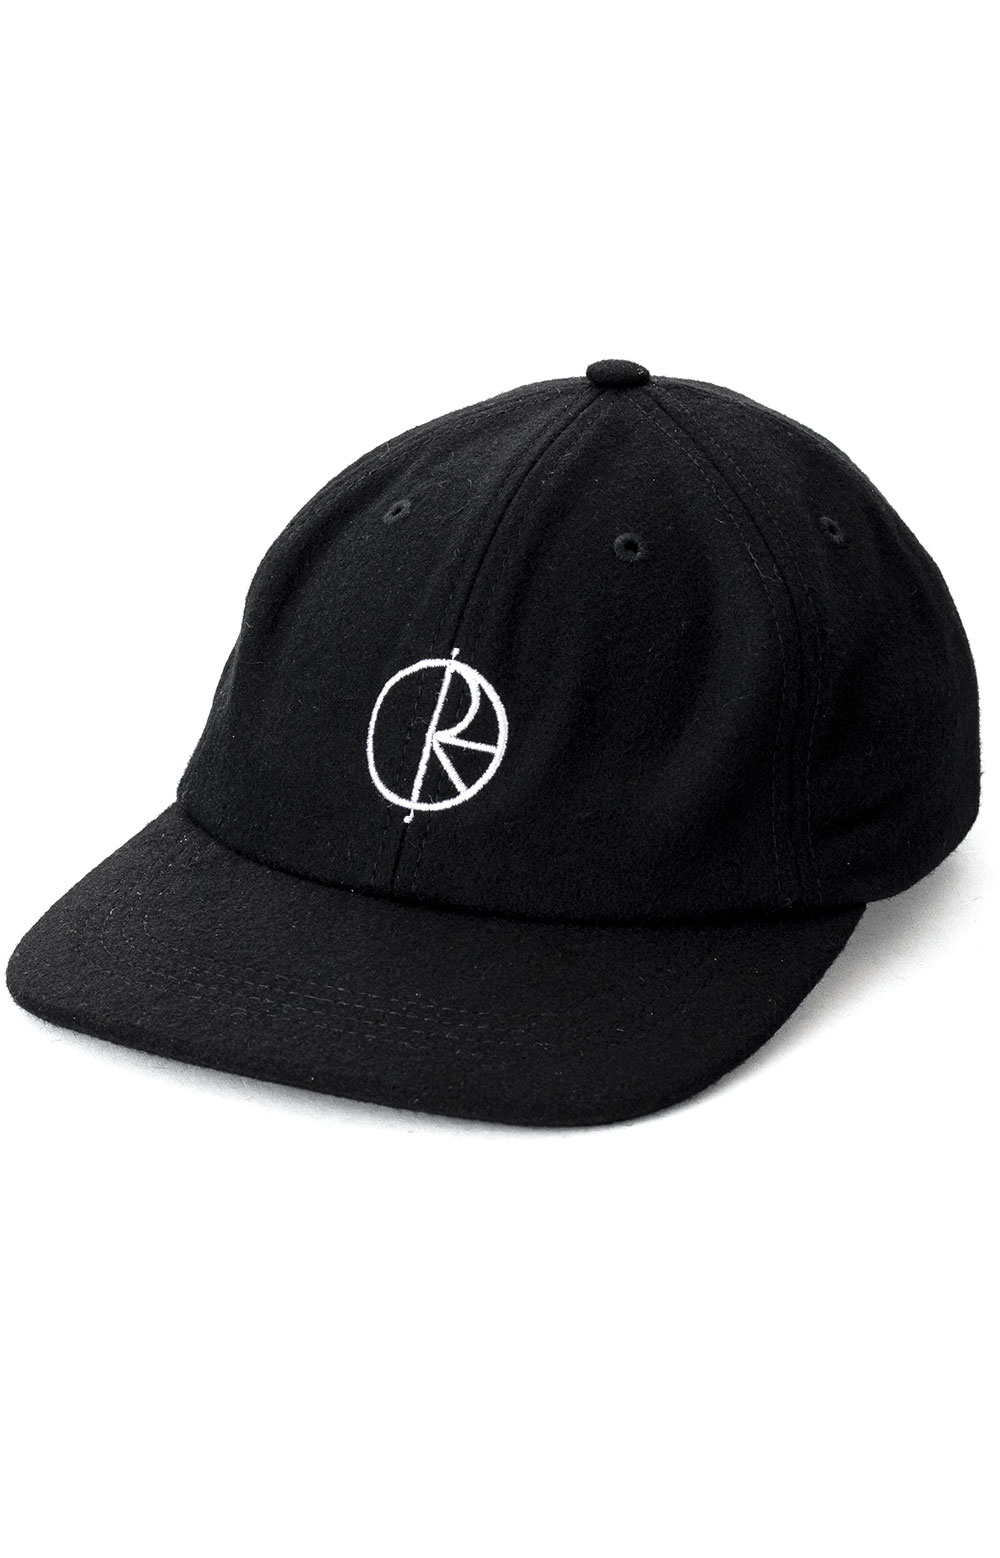 Wool Cap - Black